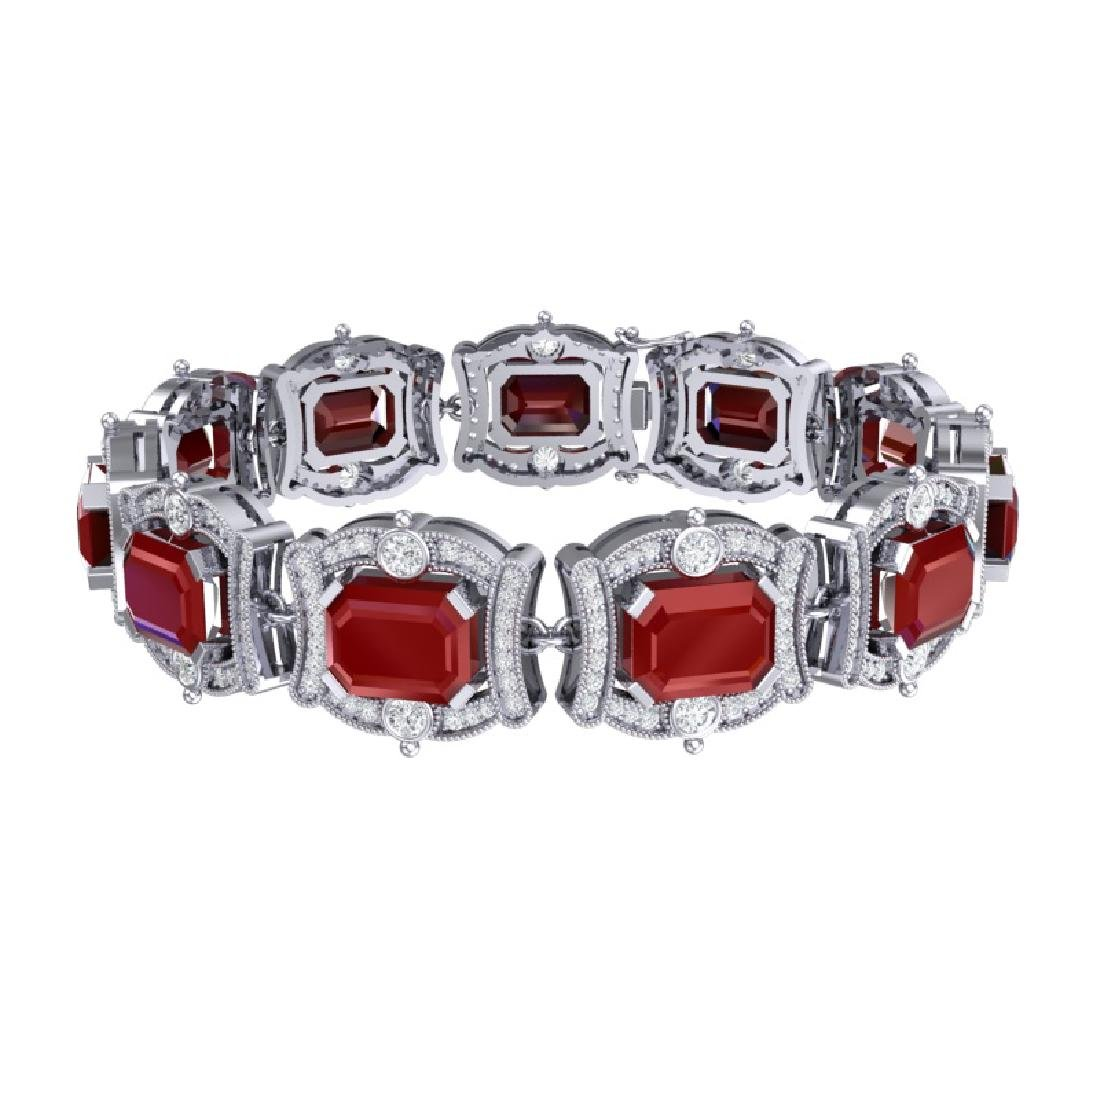 43.87 CTW Royalty Ruby & VS Diamond Bracelet 18K White - 2